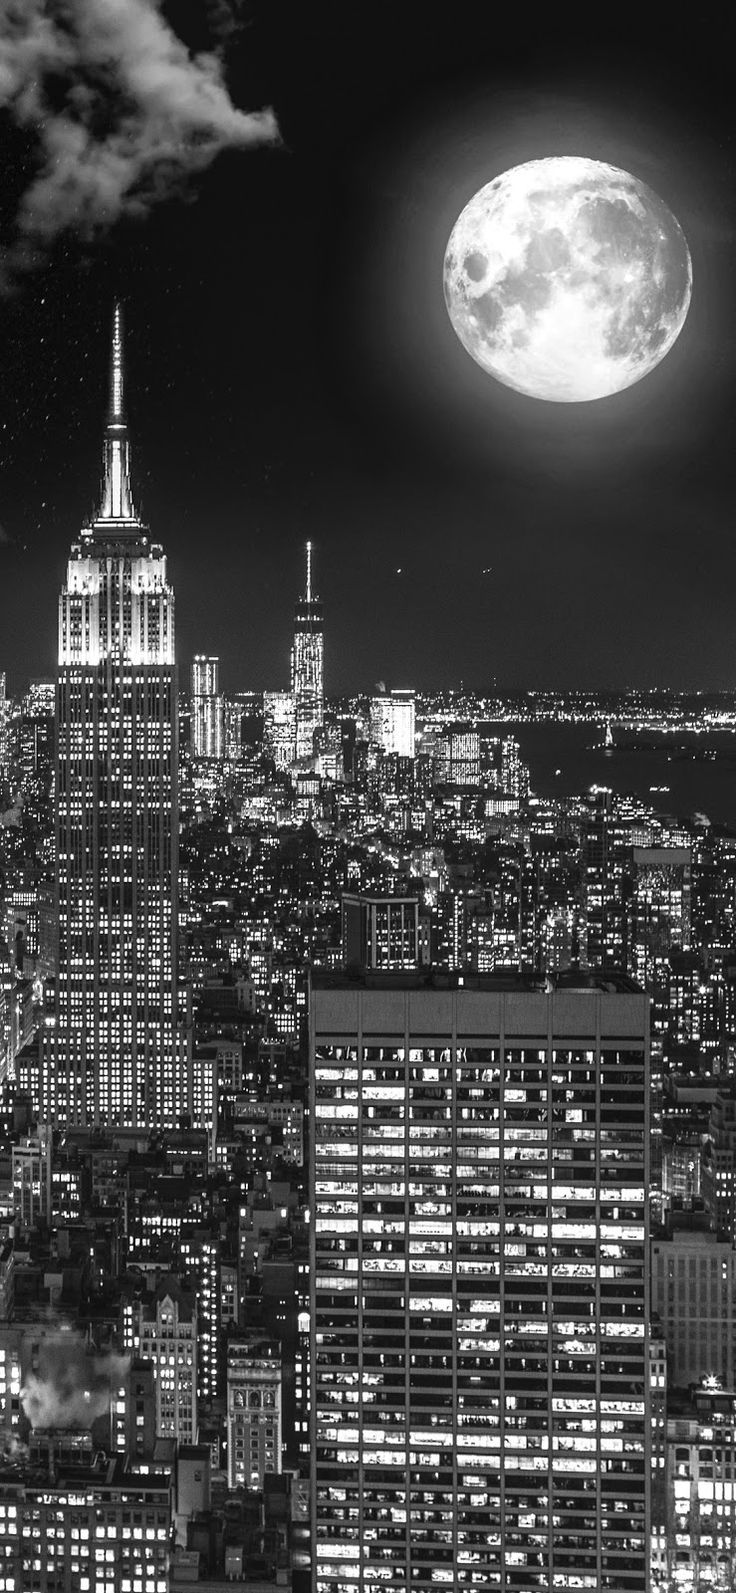 Wallpaper Aesthetic Black And White City Background